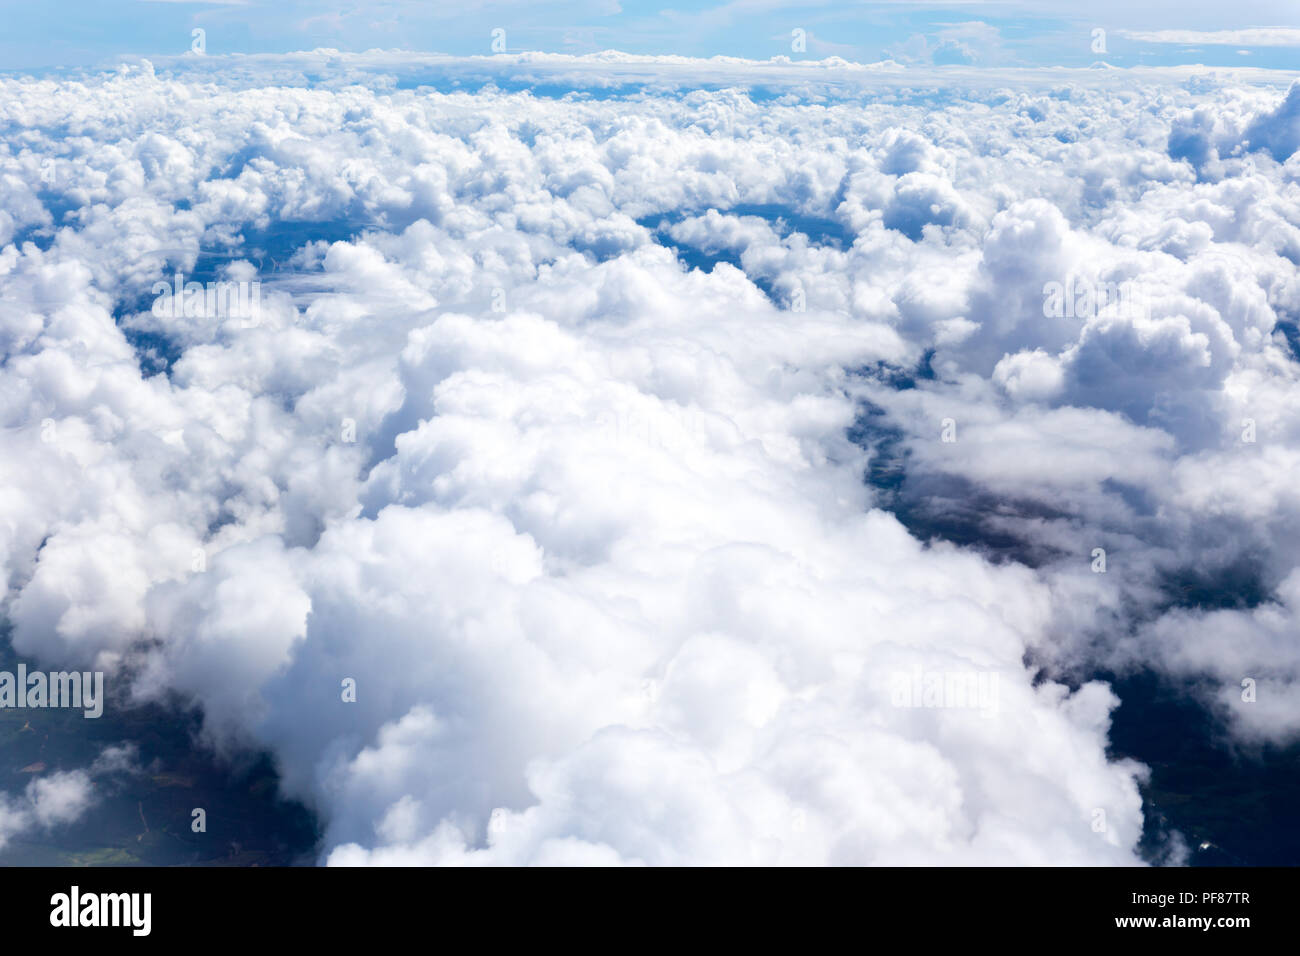 Nature background white clound and blue sky view from airplane windows - Stock Image